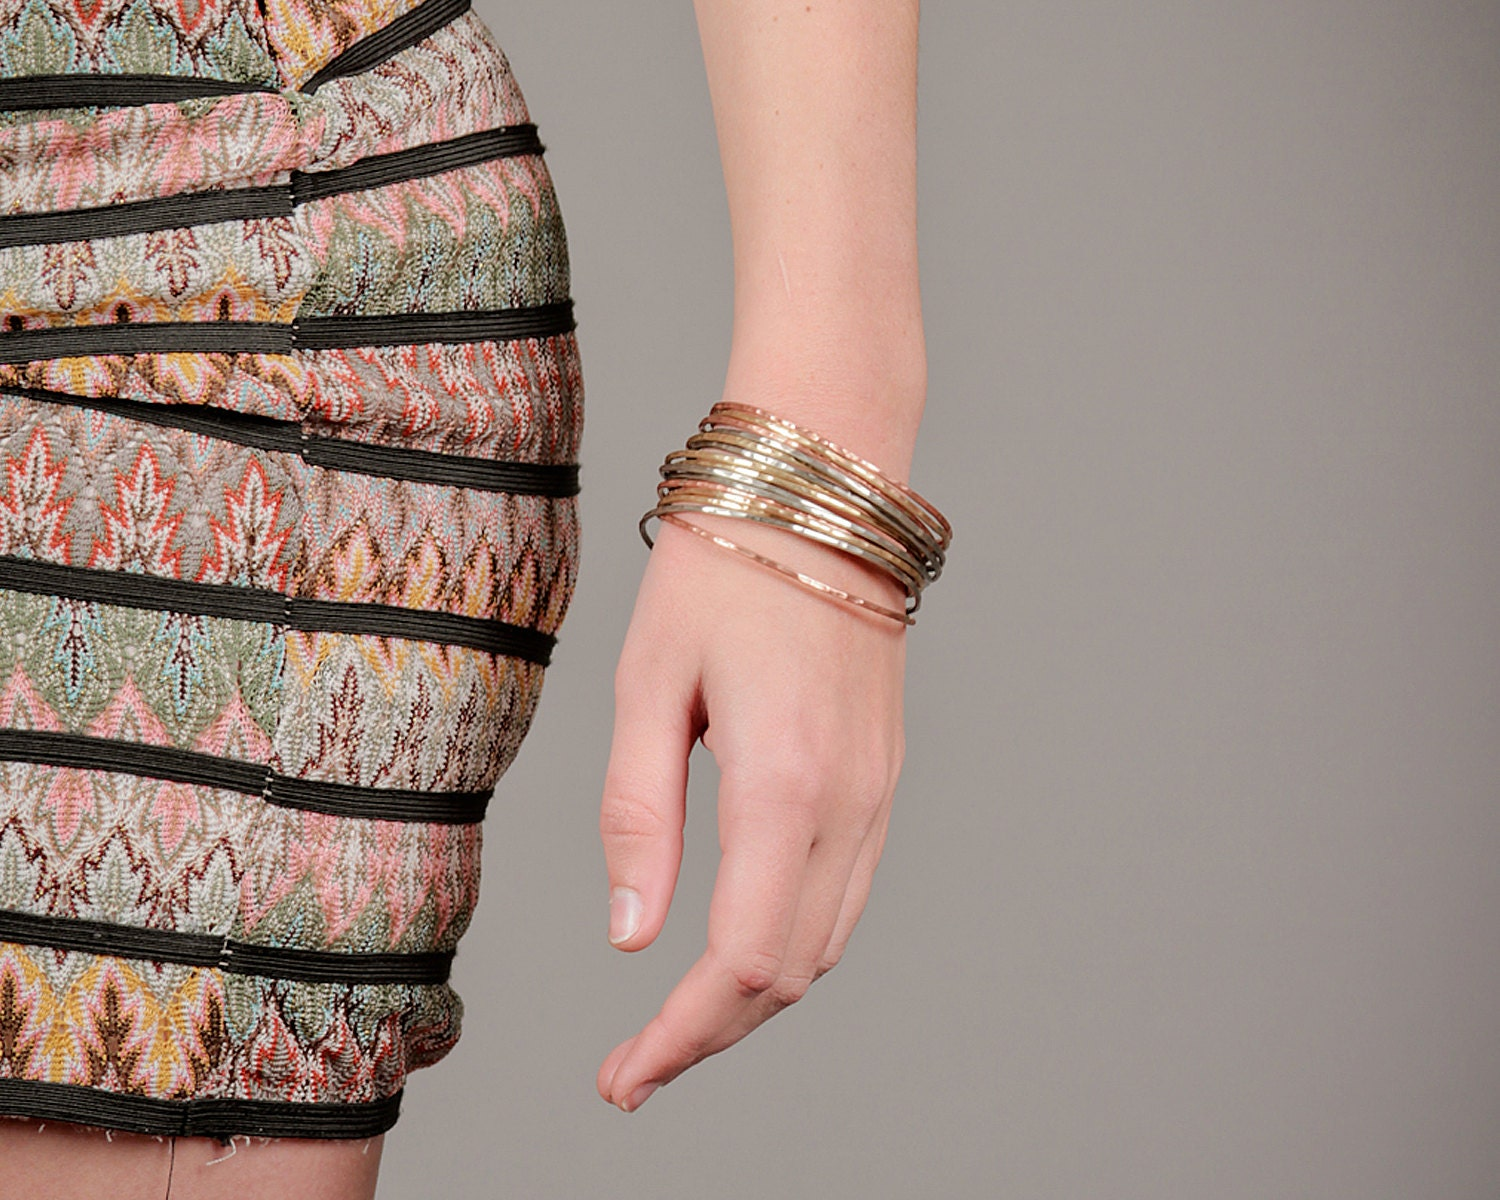 Bangle Bracelets Stacking Gold Silver Copper Bangles Chic Spring Fashion Fresh Finds Hand Hammered Cute Unique Hipster Fashion Nine Bangles